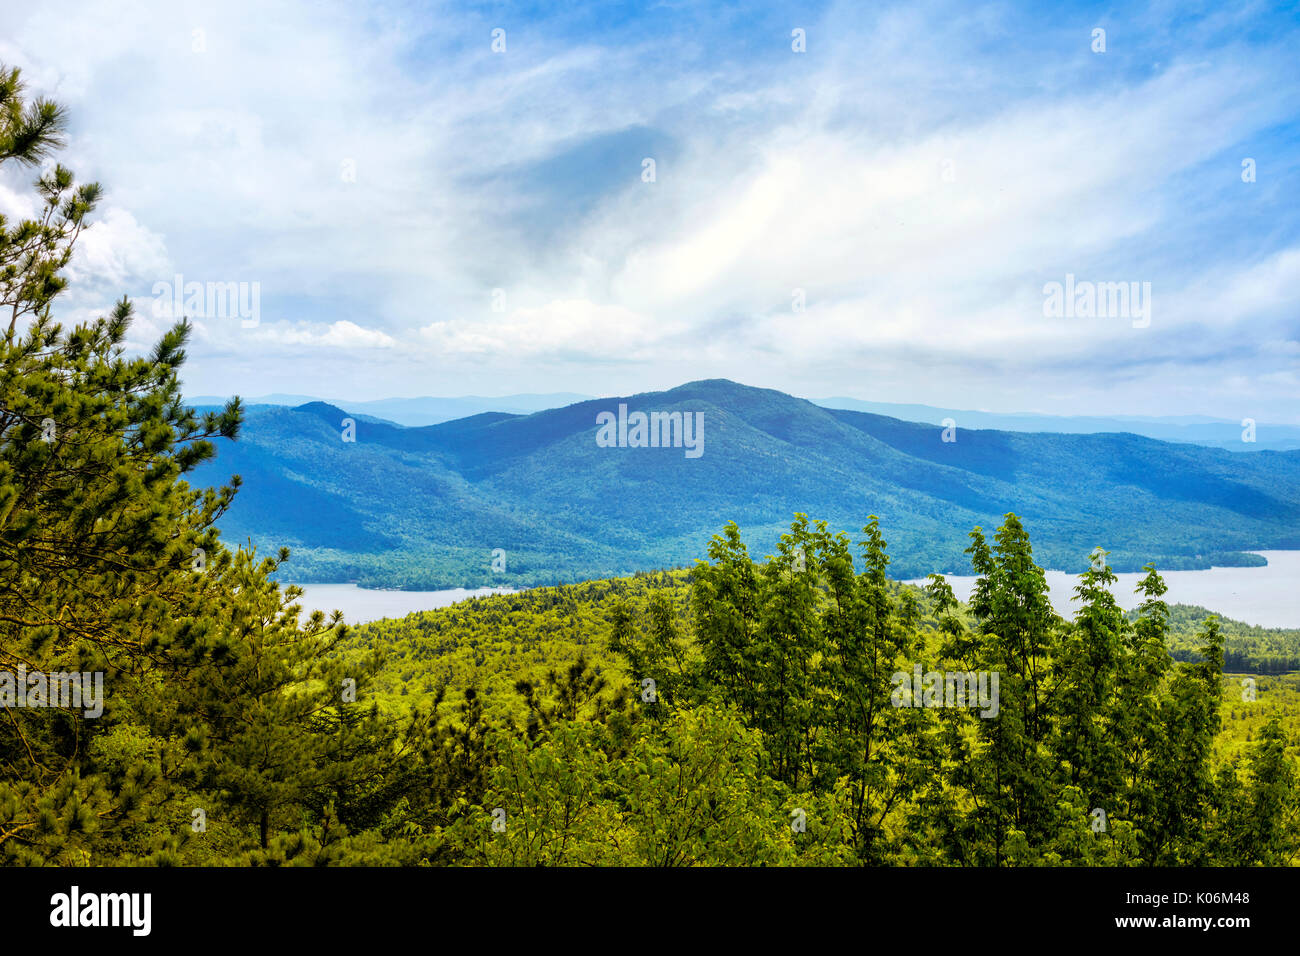 Adirondacks Mountain Range Adirondack Park Warren County